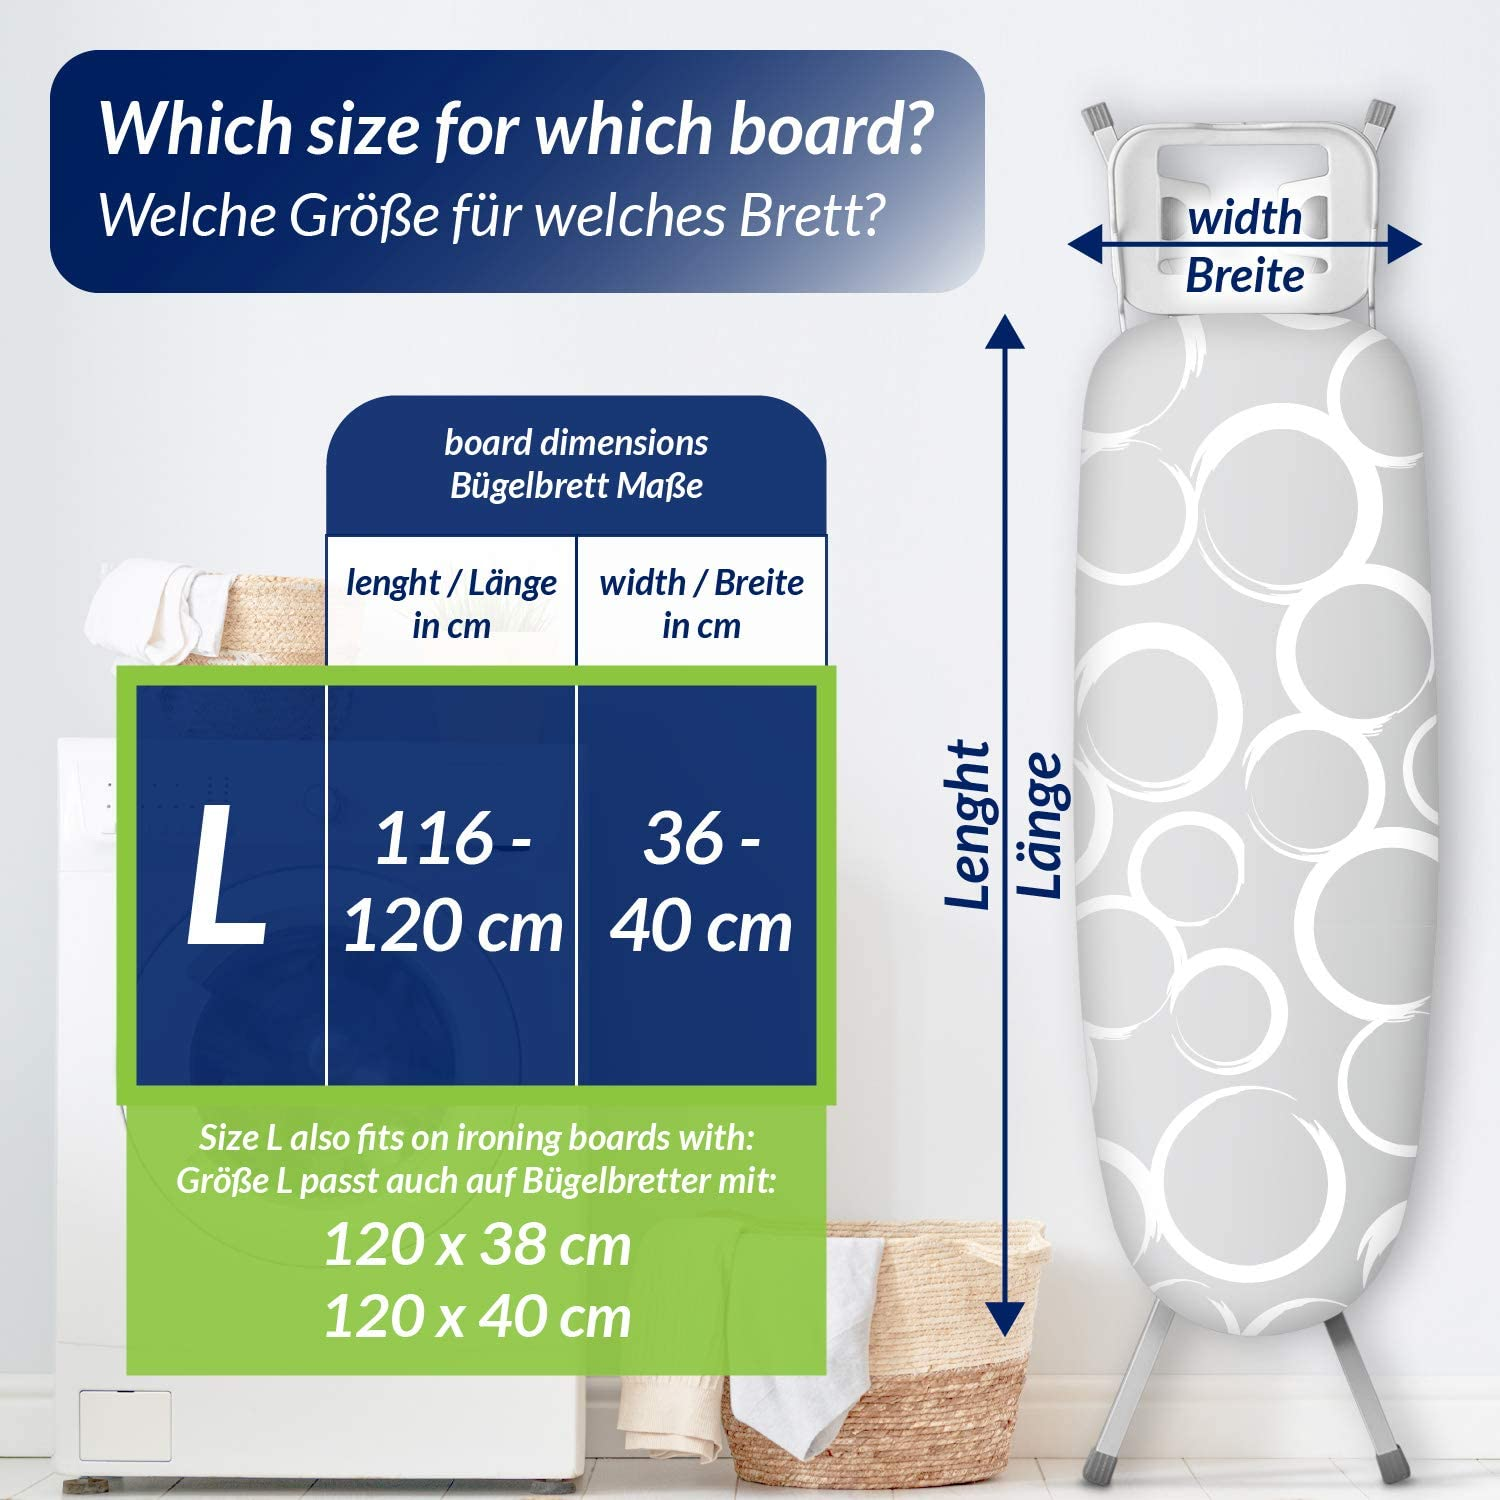 Aluminium heat and steam reflection smart/&gentle High Speed Padded Iron Board Cover up to 115x35cm with 3 Clips 100/% Cotton Top Layer Oeko-Tex tested for harmful substances